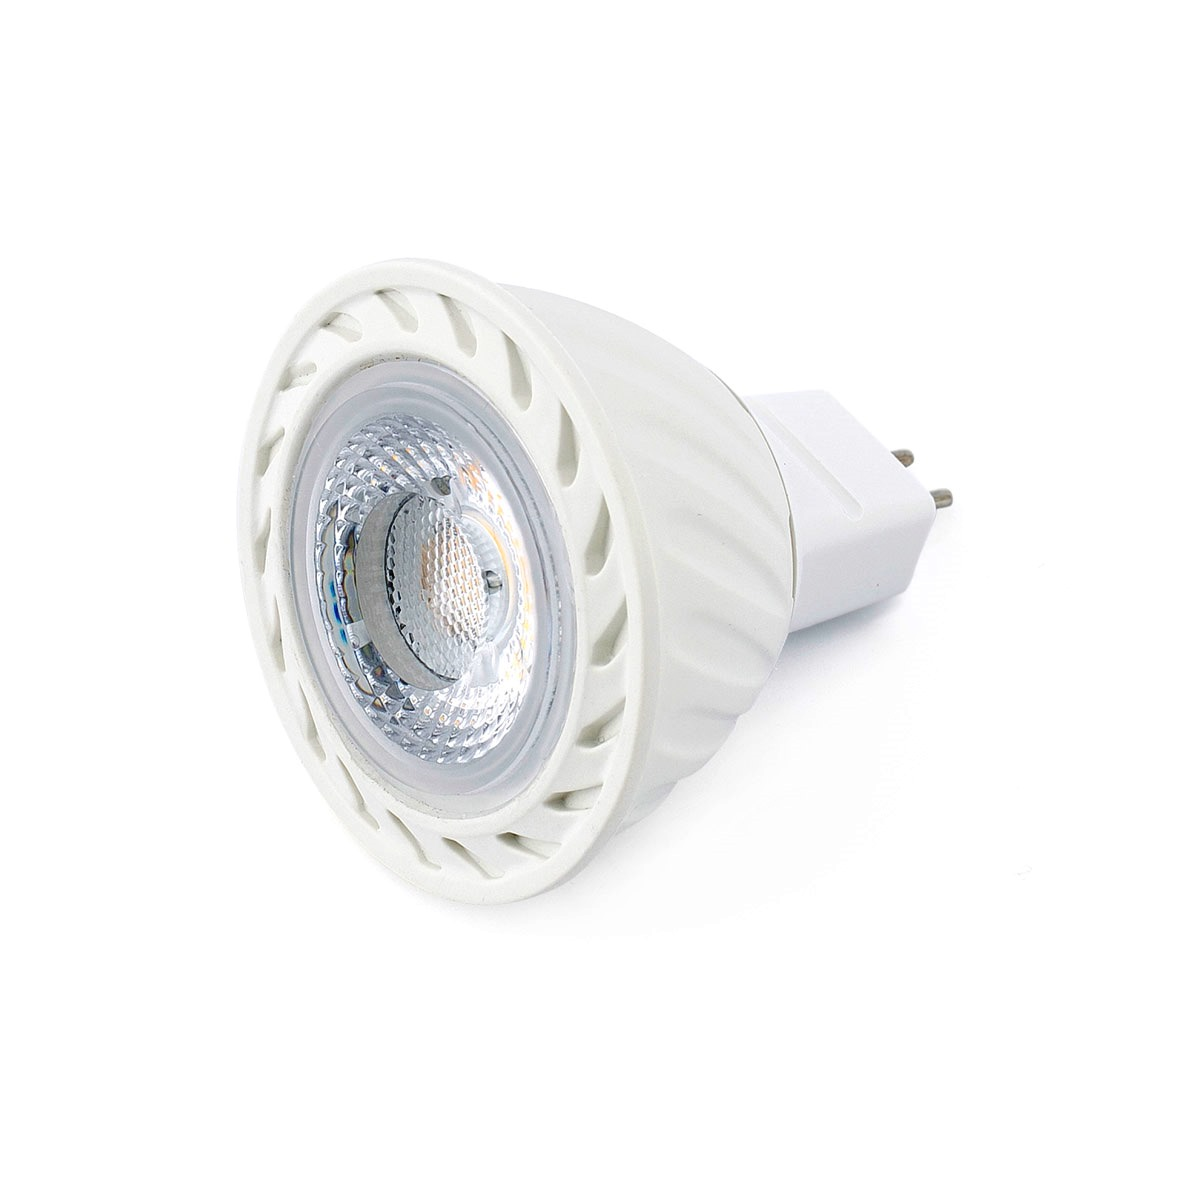 BEC LED MR16 8W 4000K 17327 Faro Barcelona